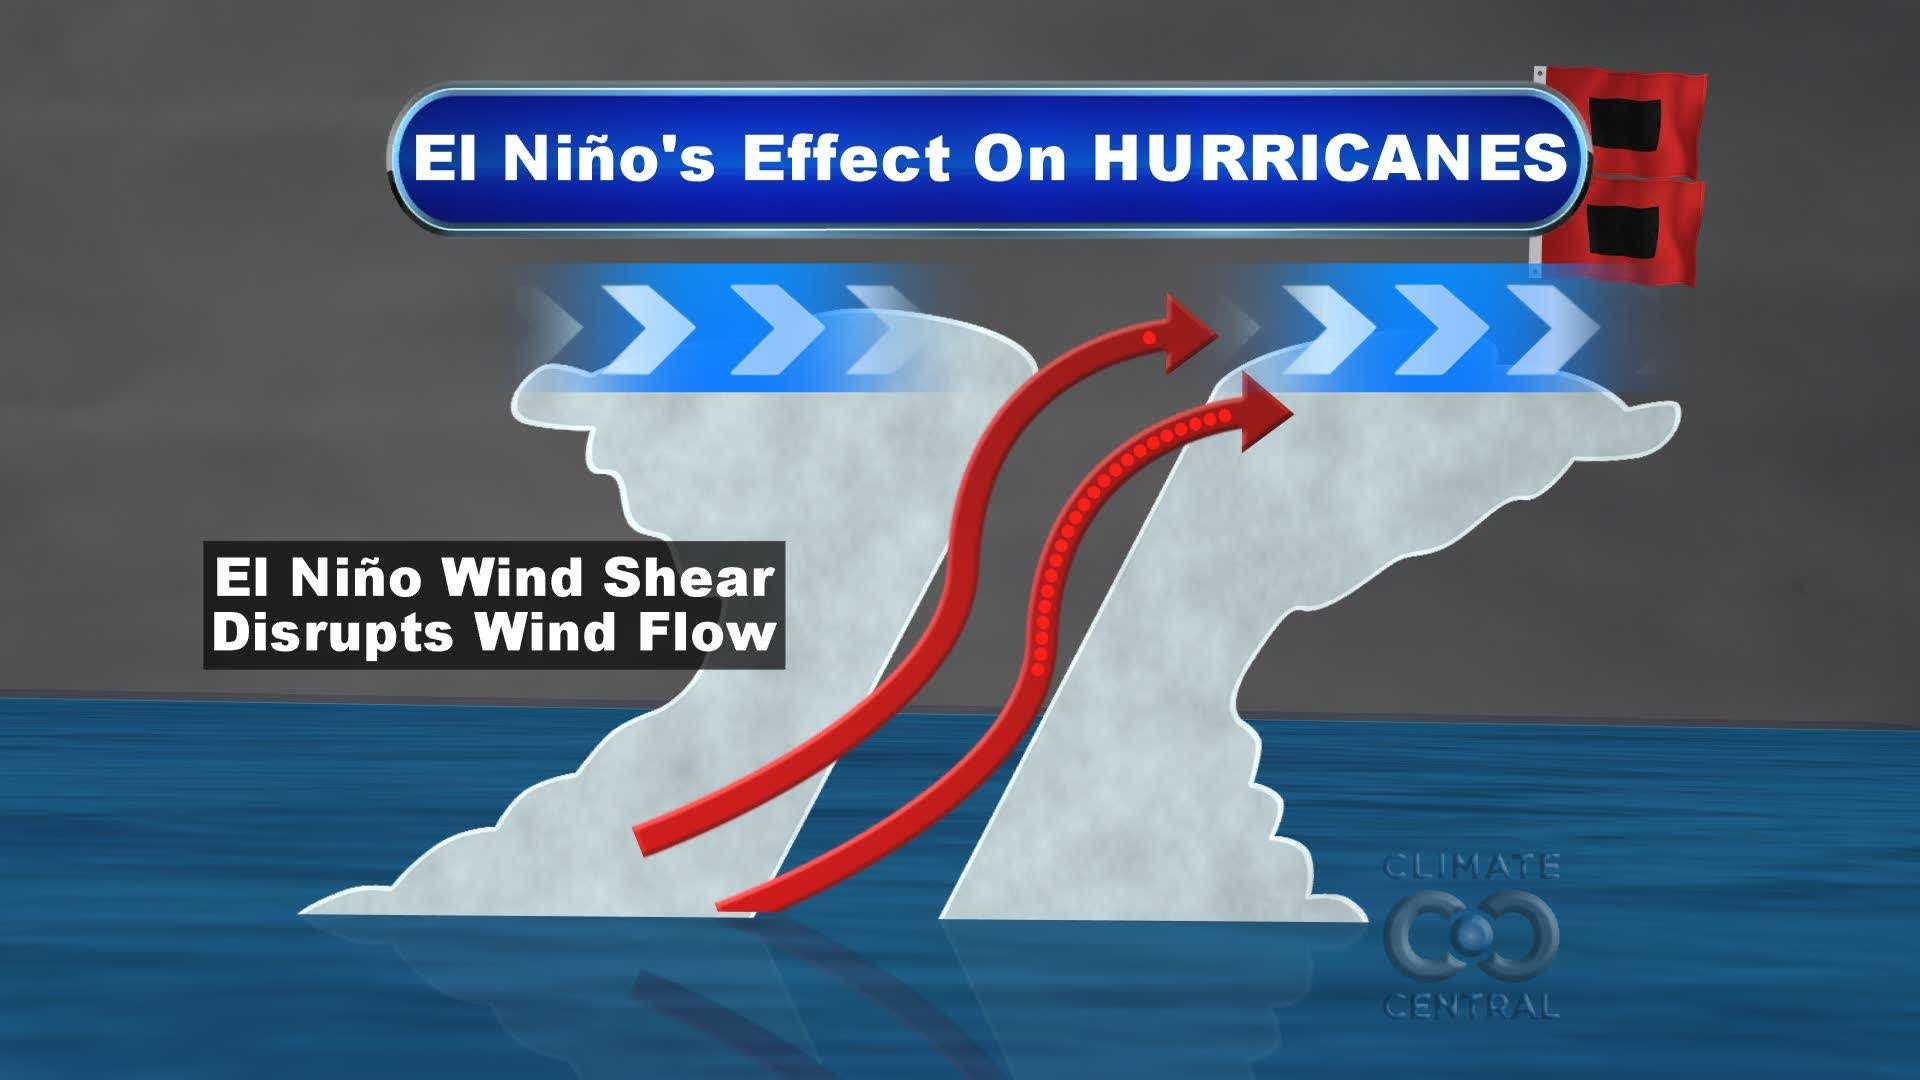 This simulation shows how increased wind shear caused by El Nino can prevent tropical disturbances from developing into hurricanes.